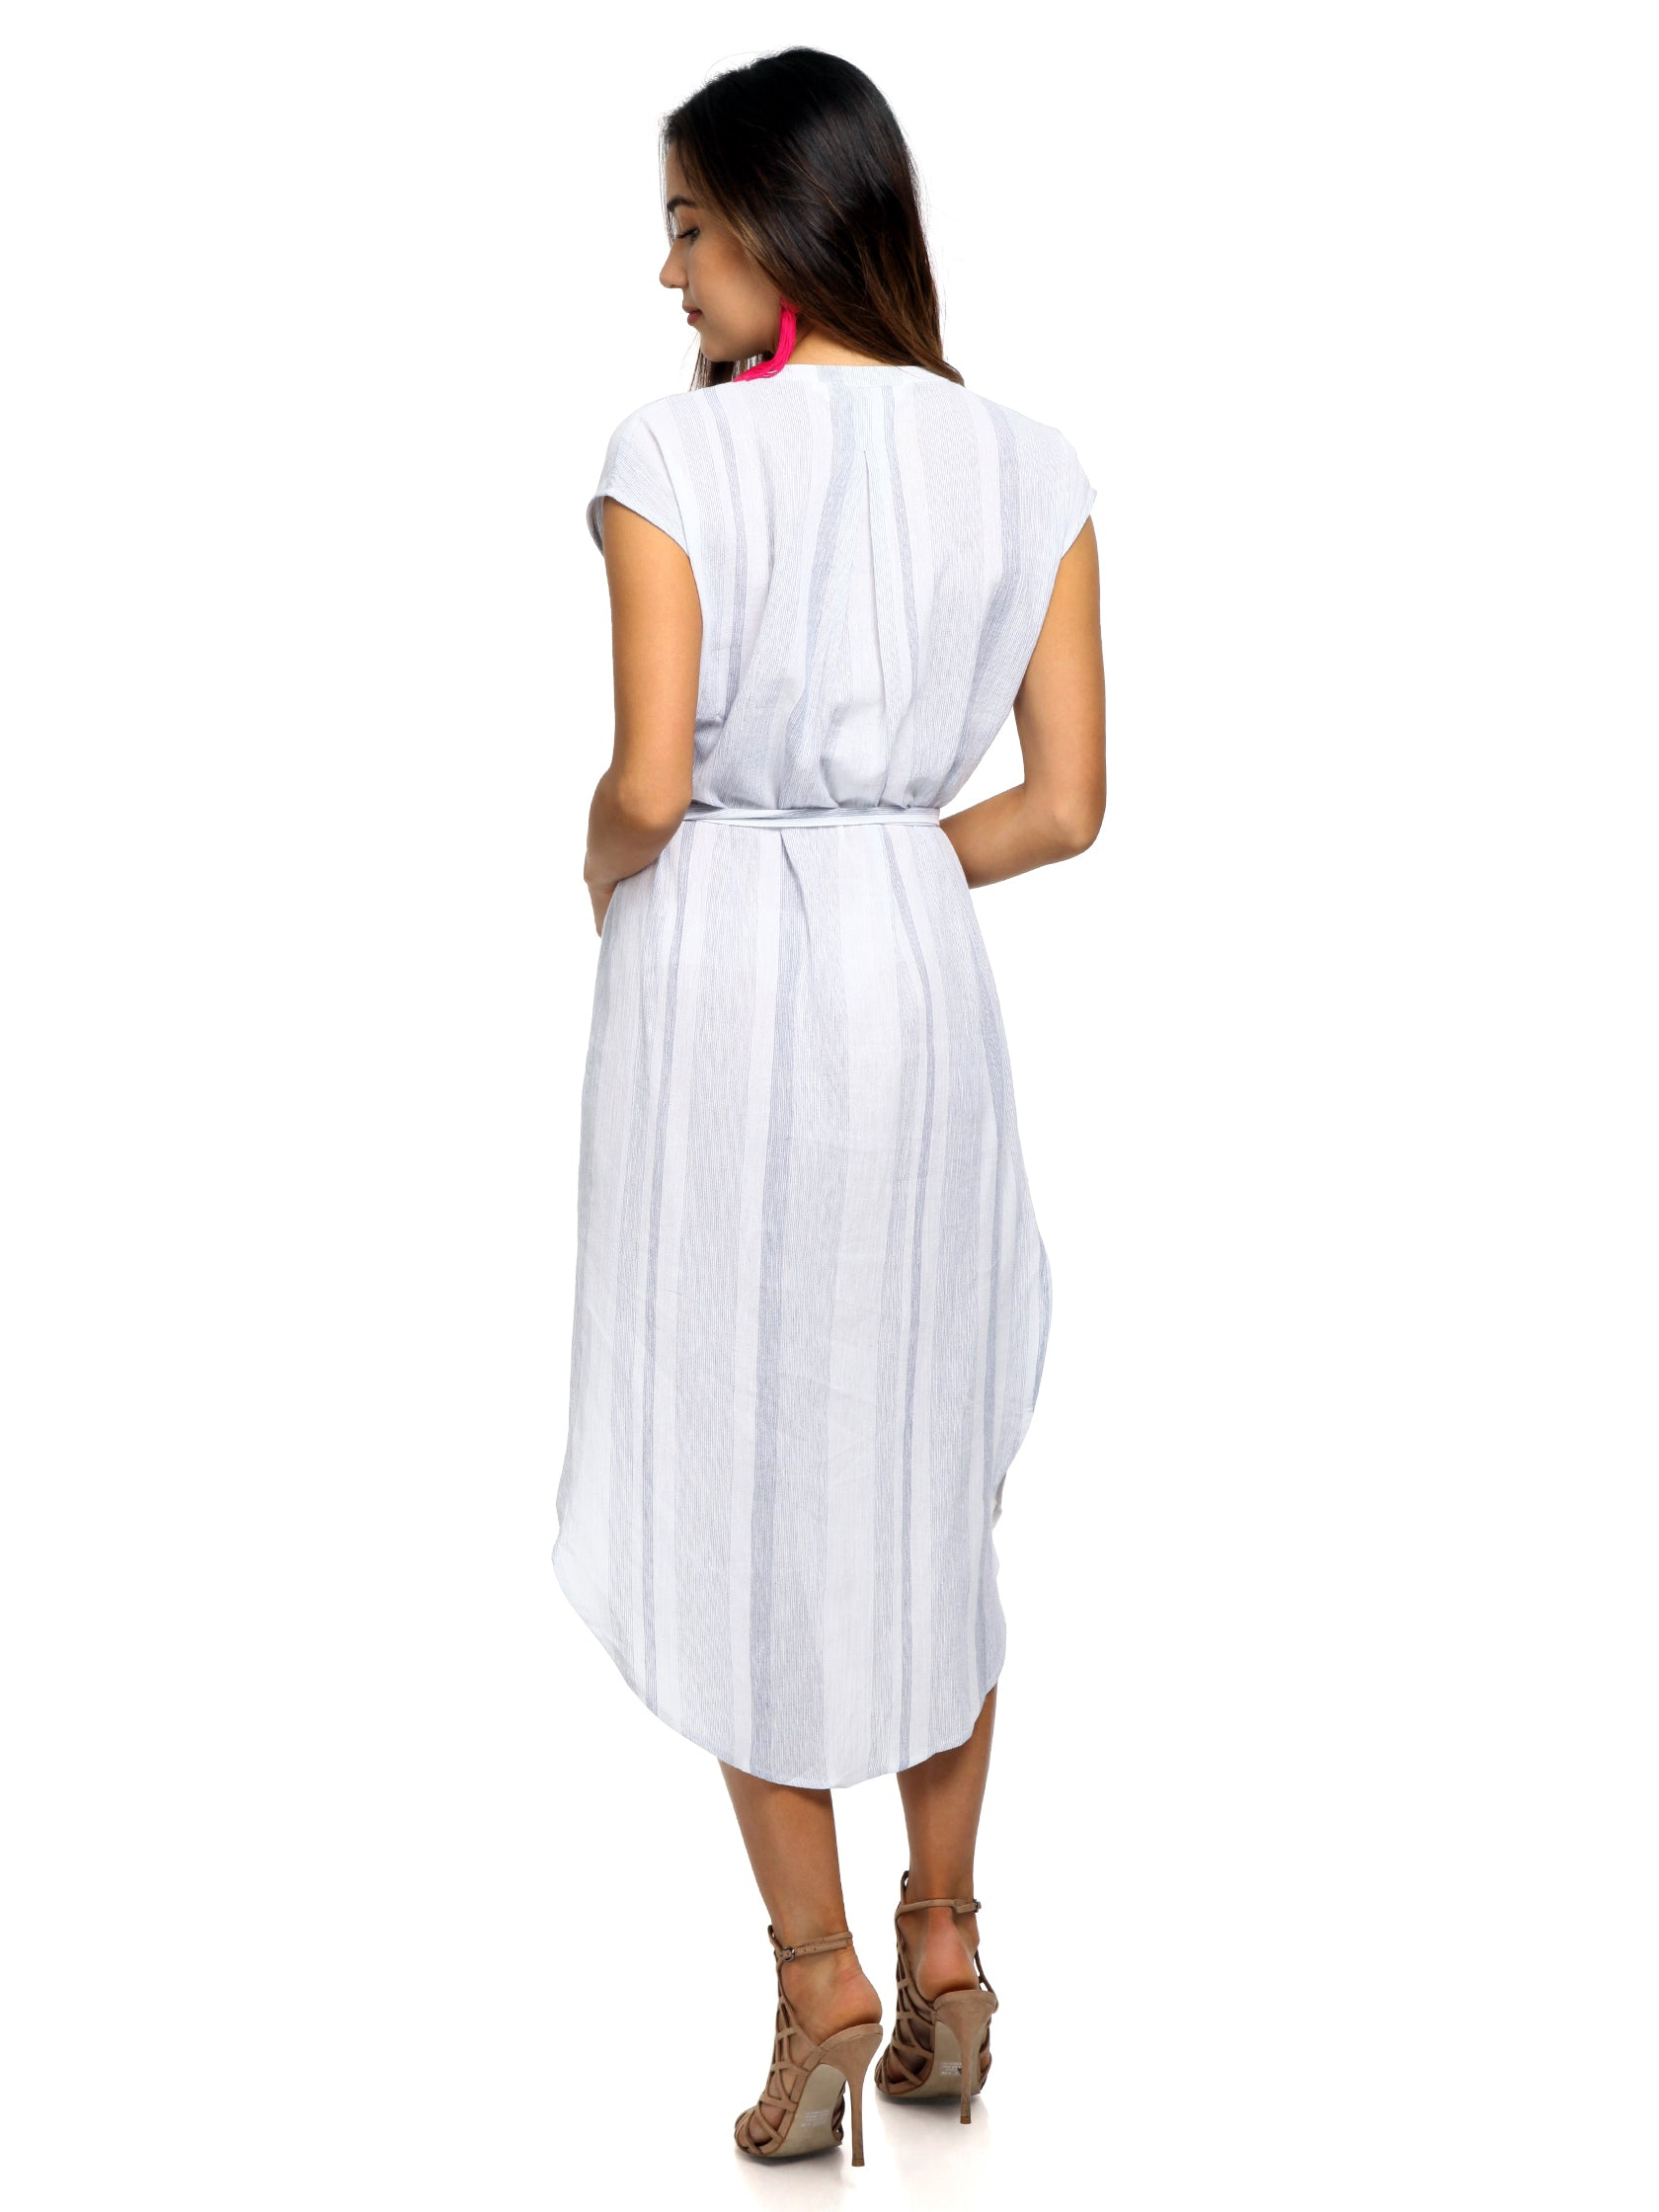 Women wearing a dress rental from ASTR called Sawyer Dress